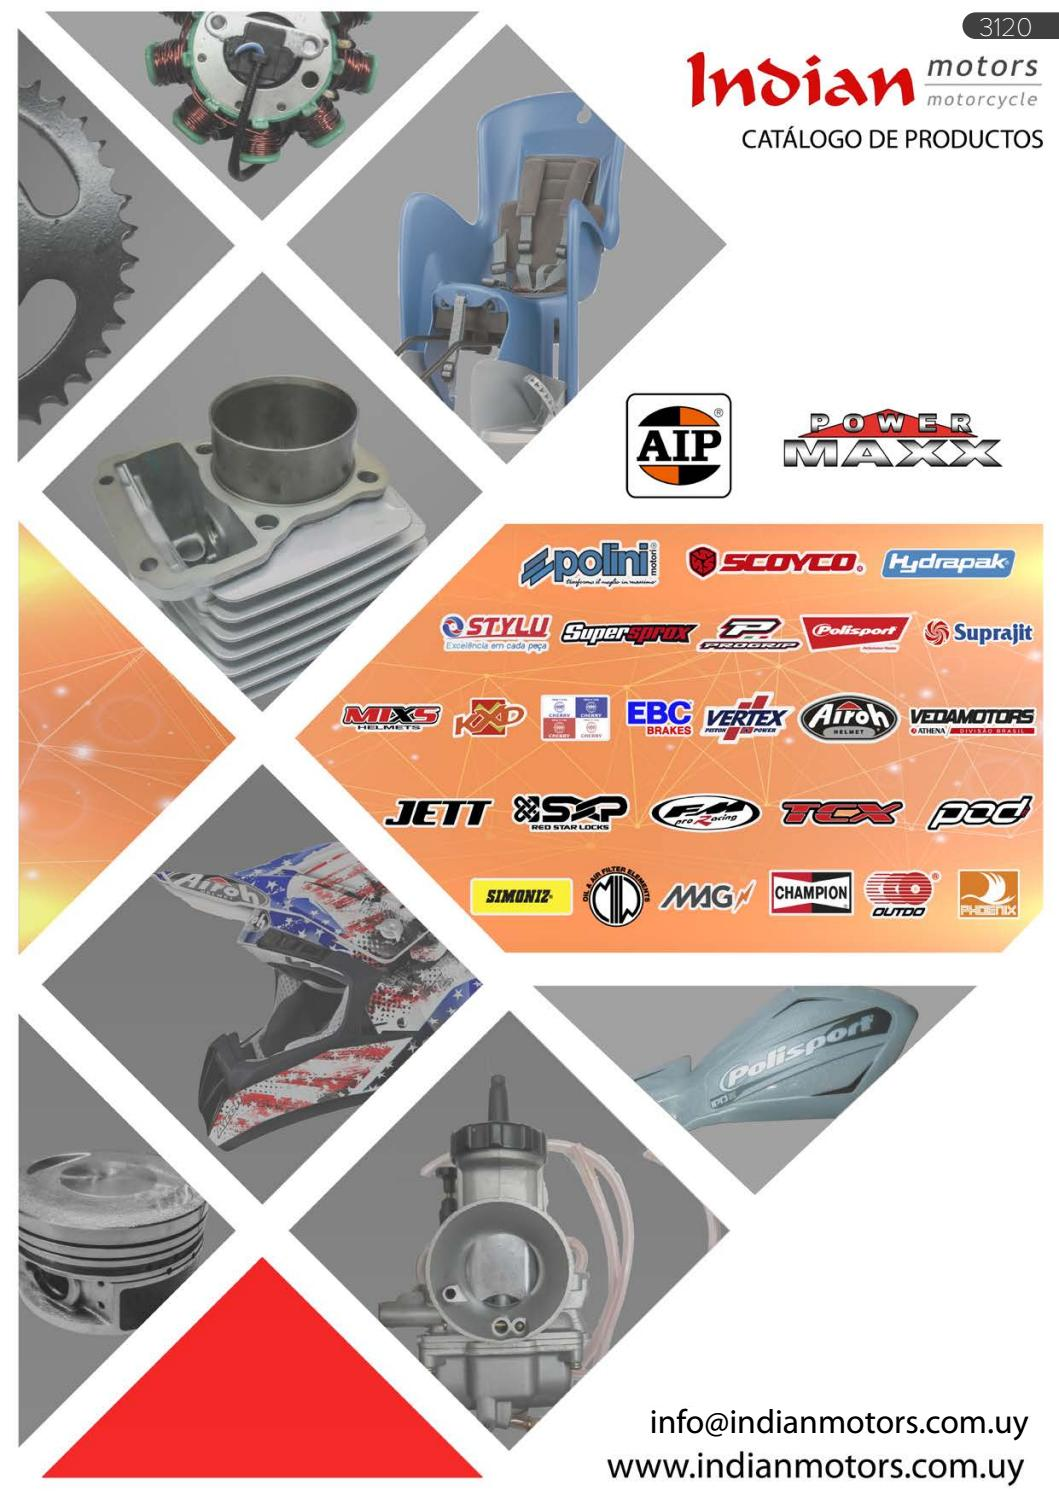 Catalogo Indian Motors by Indian Motors - issuu on